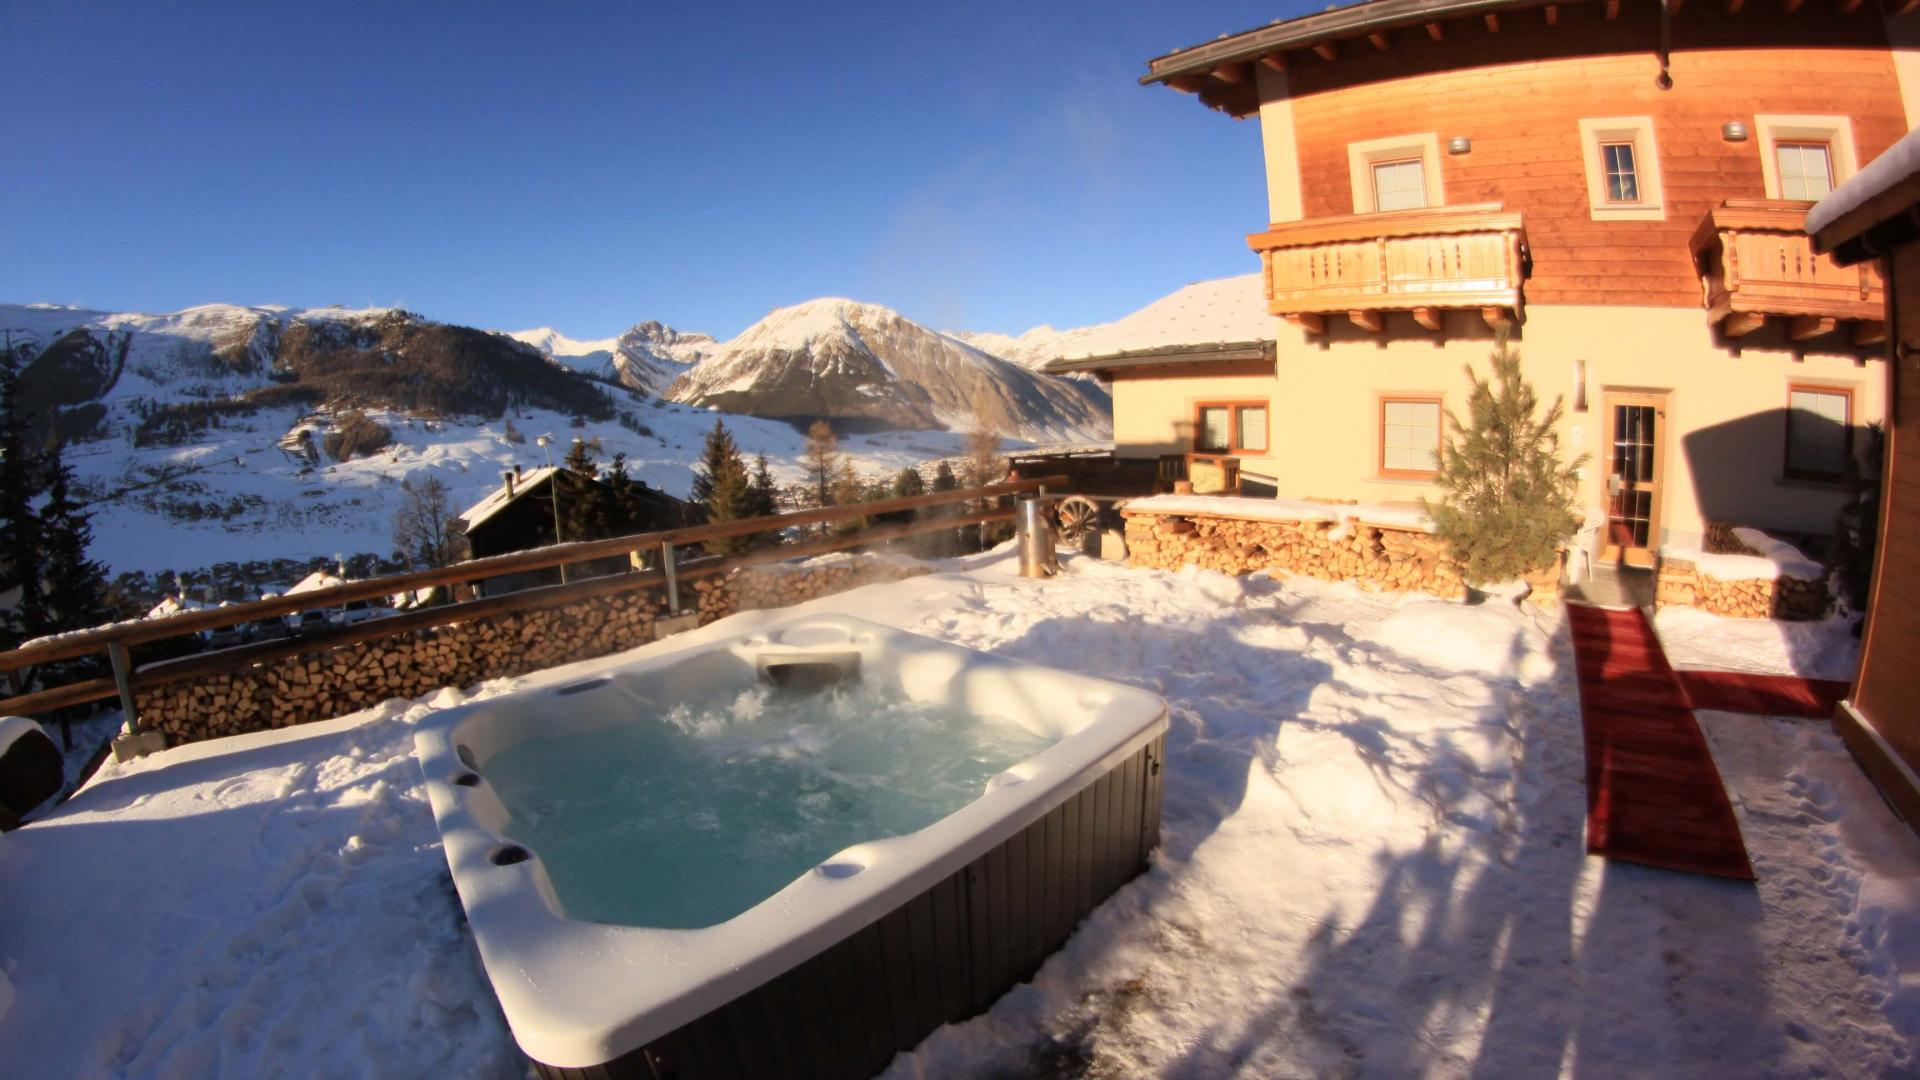 Area Wellness - Hotel del Bosco a Livigno